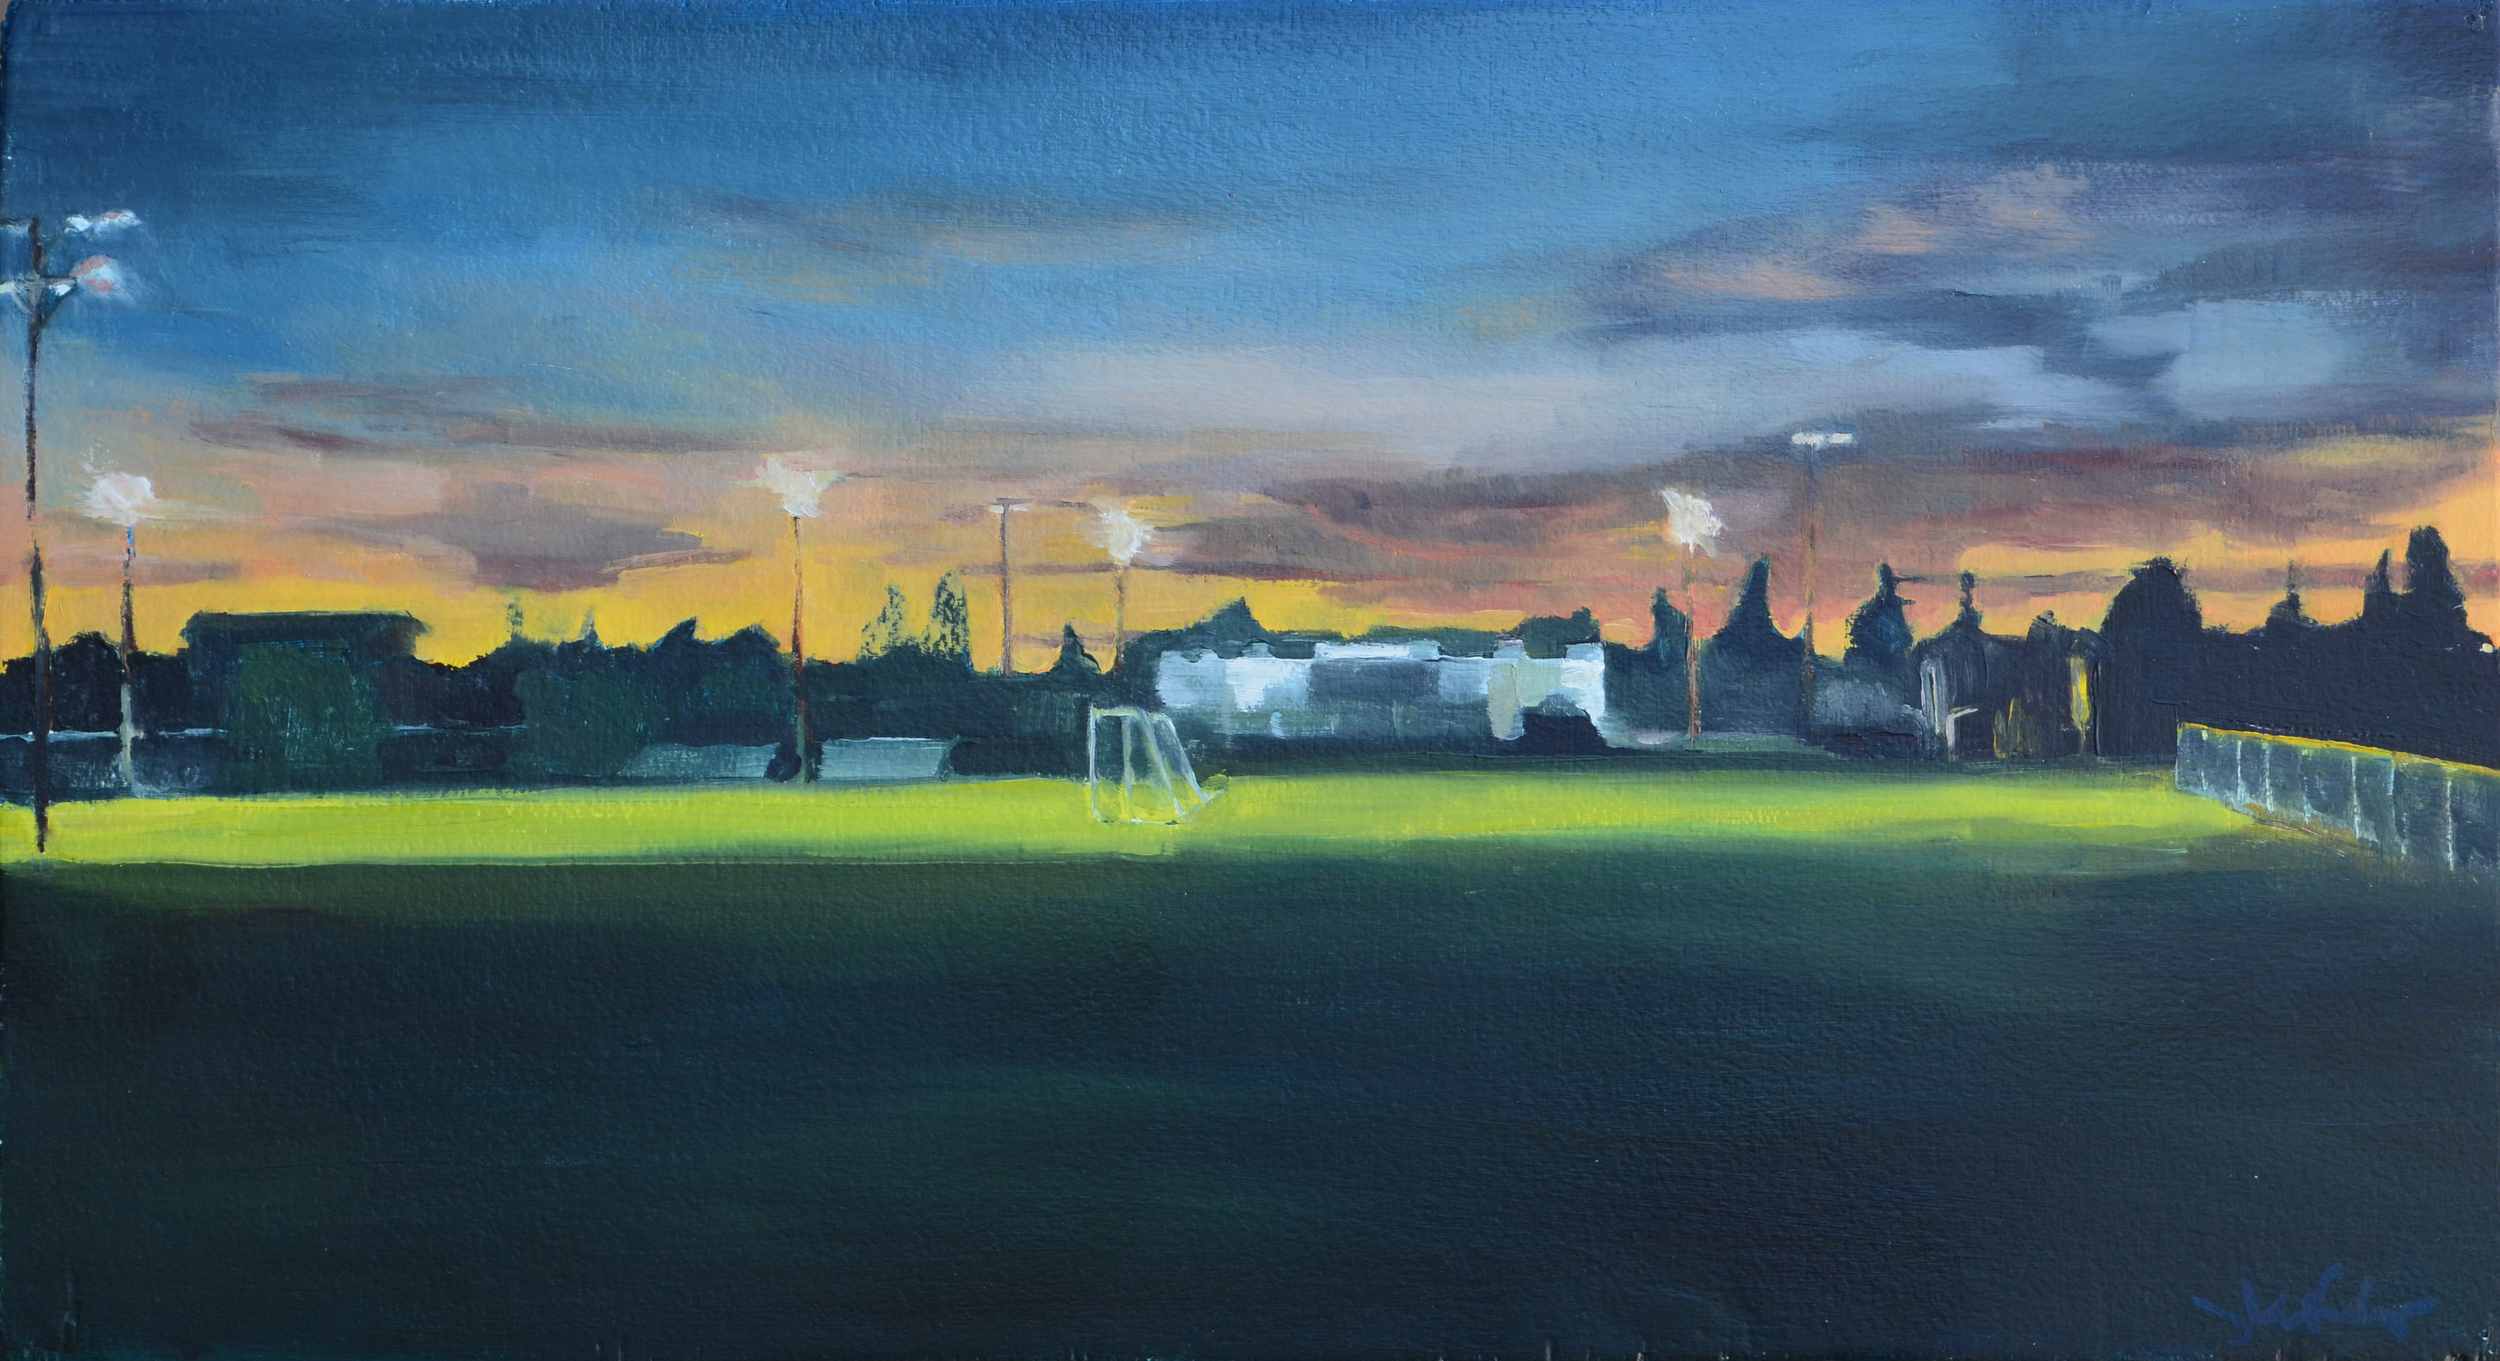 Davis High Sports Fields. 2014. Oil on panel. 22 x 12 inches.